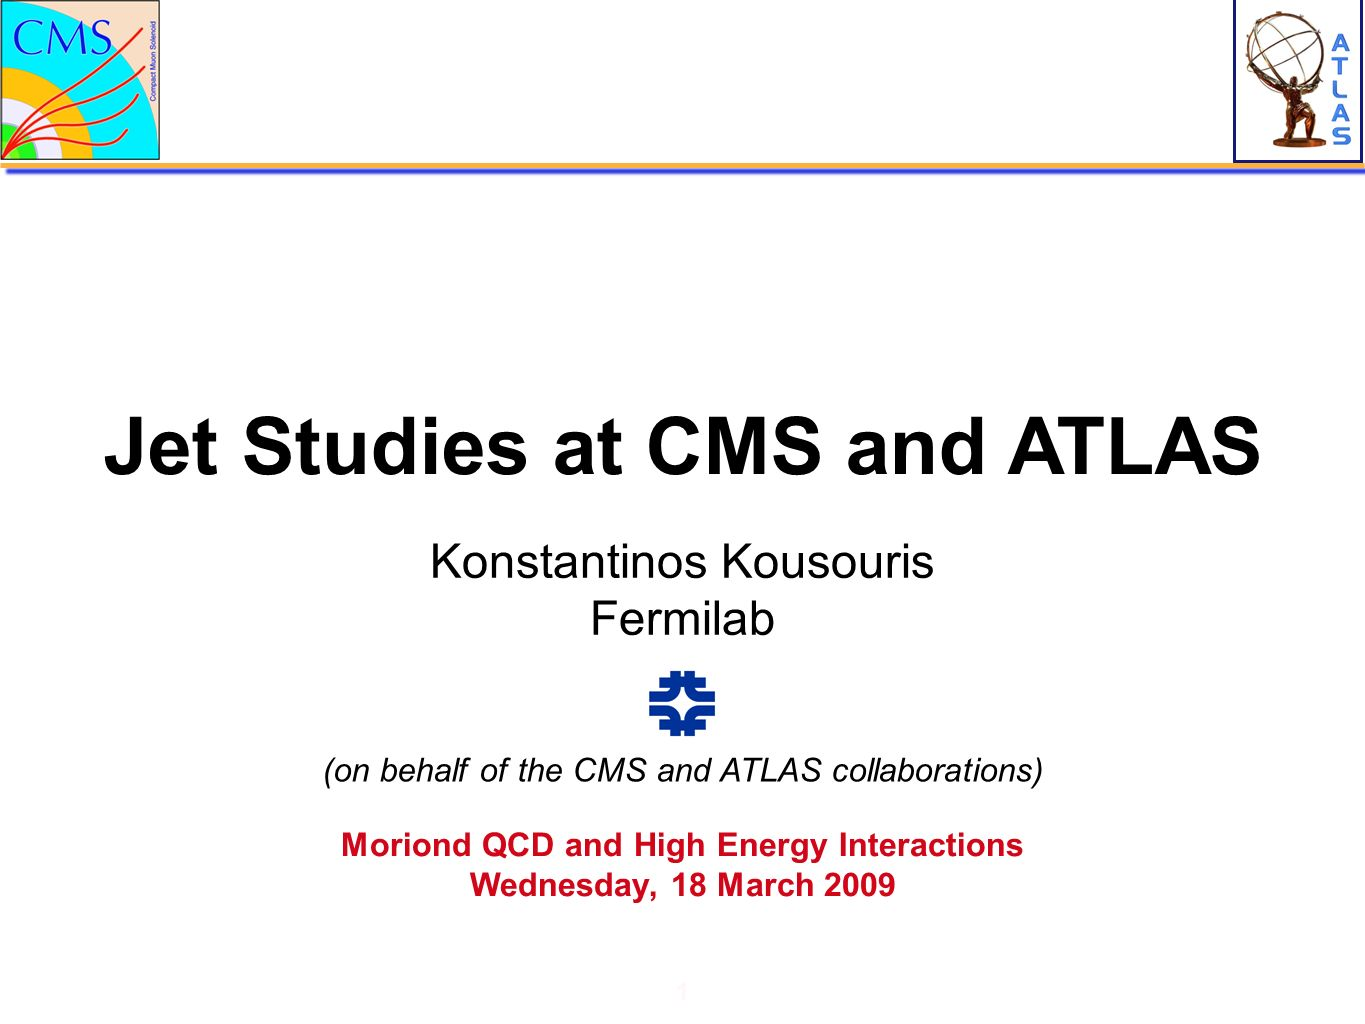 Jet Studies at CMS and ATLAS 1 Konstantinos Kousouris Fermilab Moriond QCD and High Energy Interactions Wednesday, 18 March 2009 (on behalf of the CMS and ATLAS collaborations)